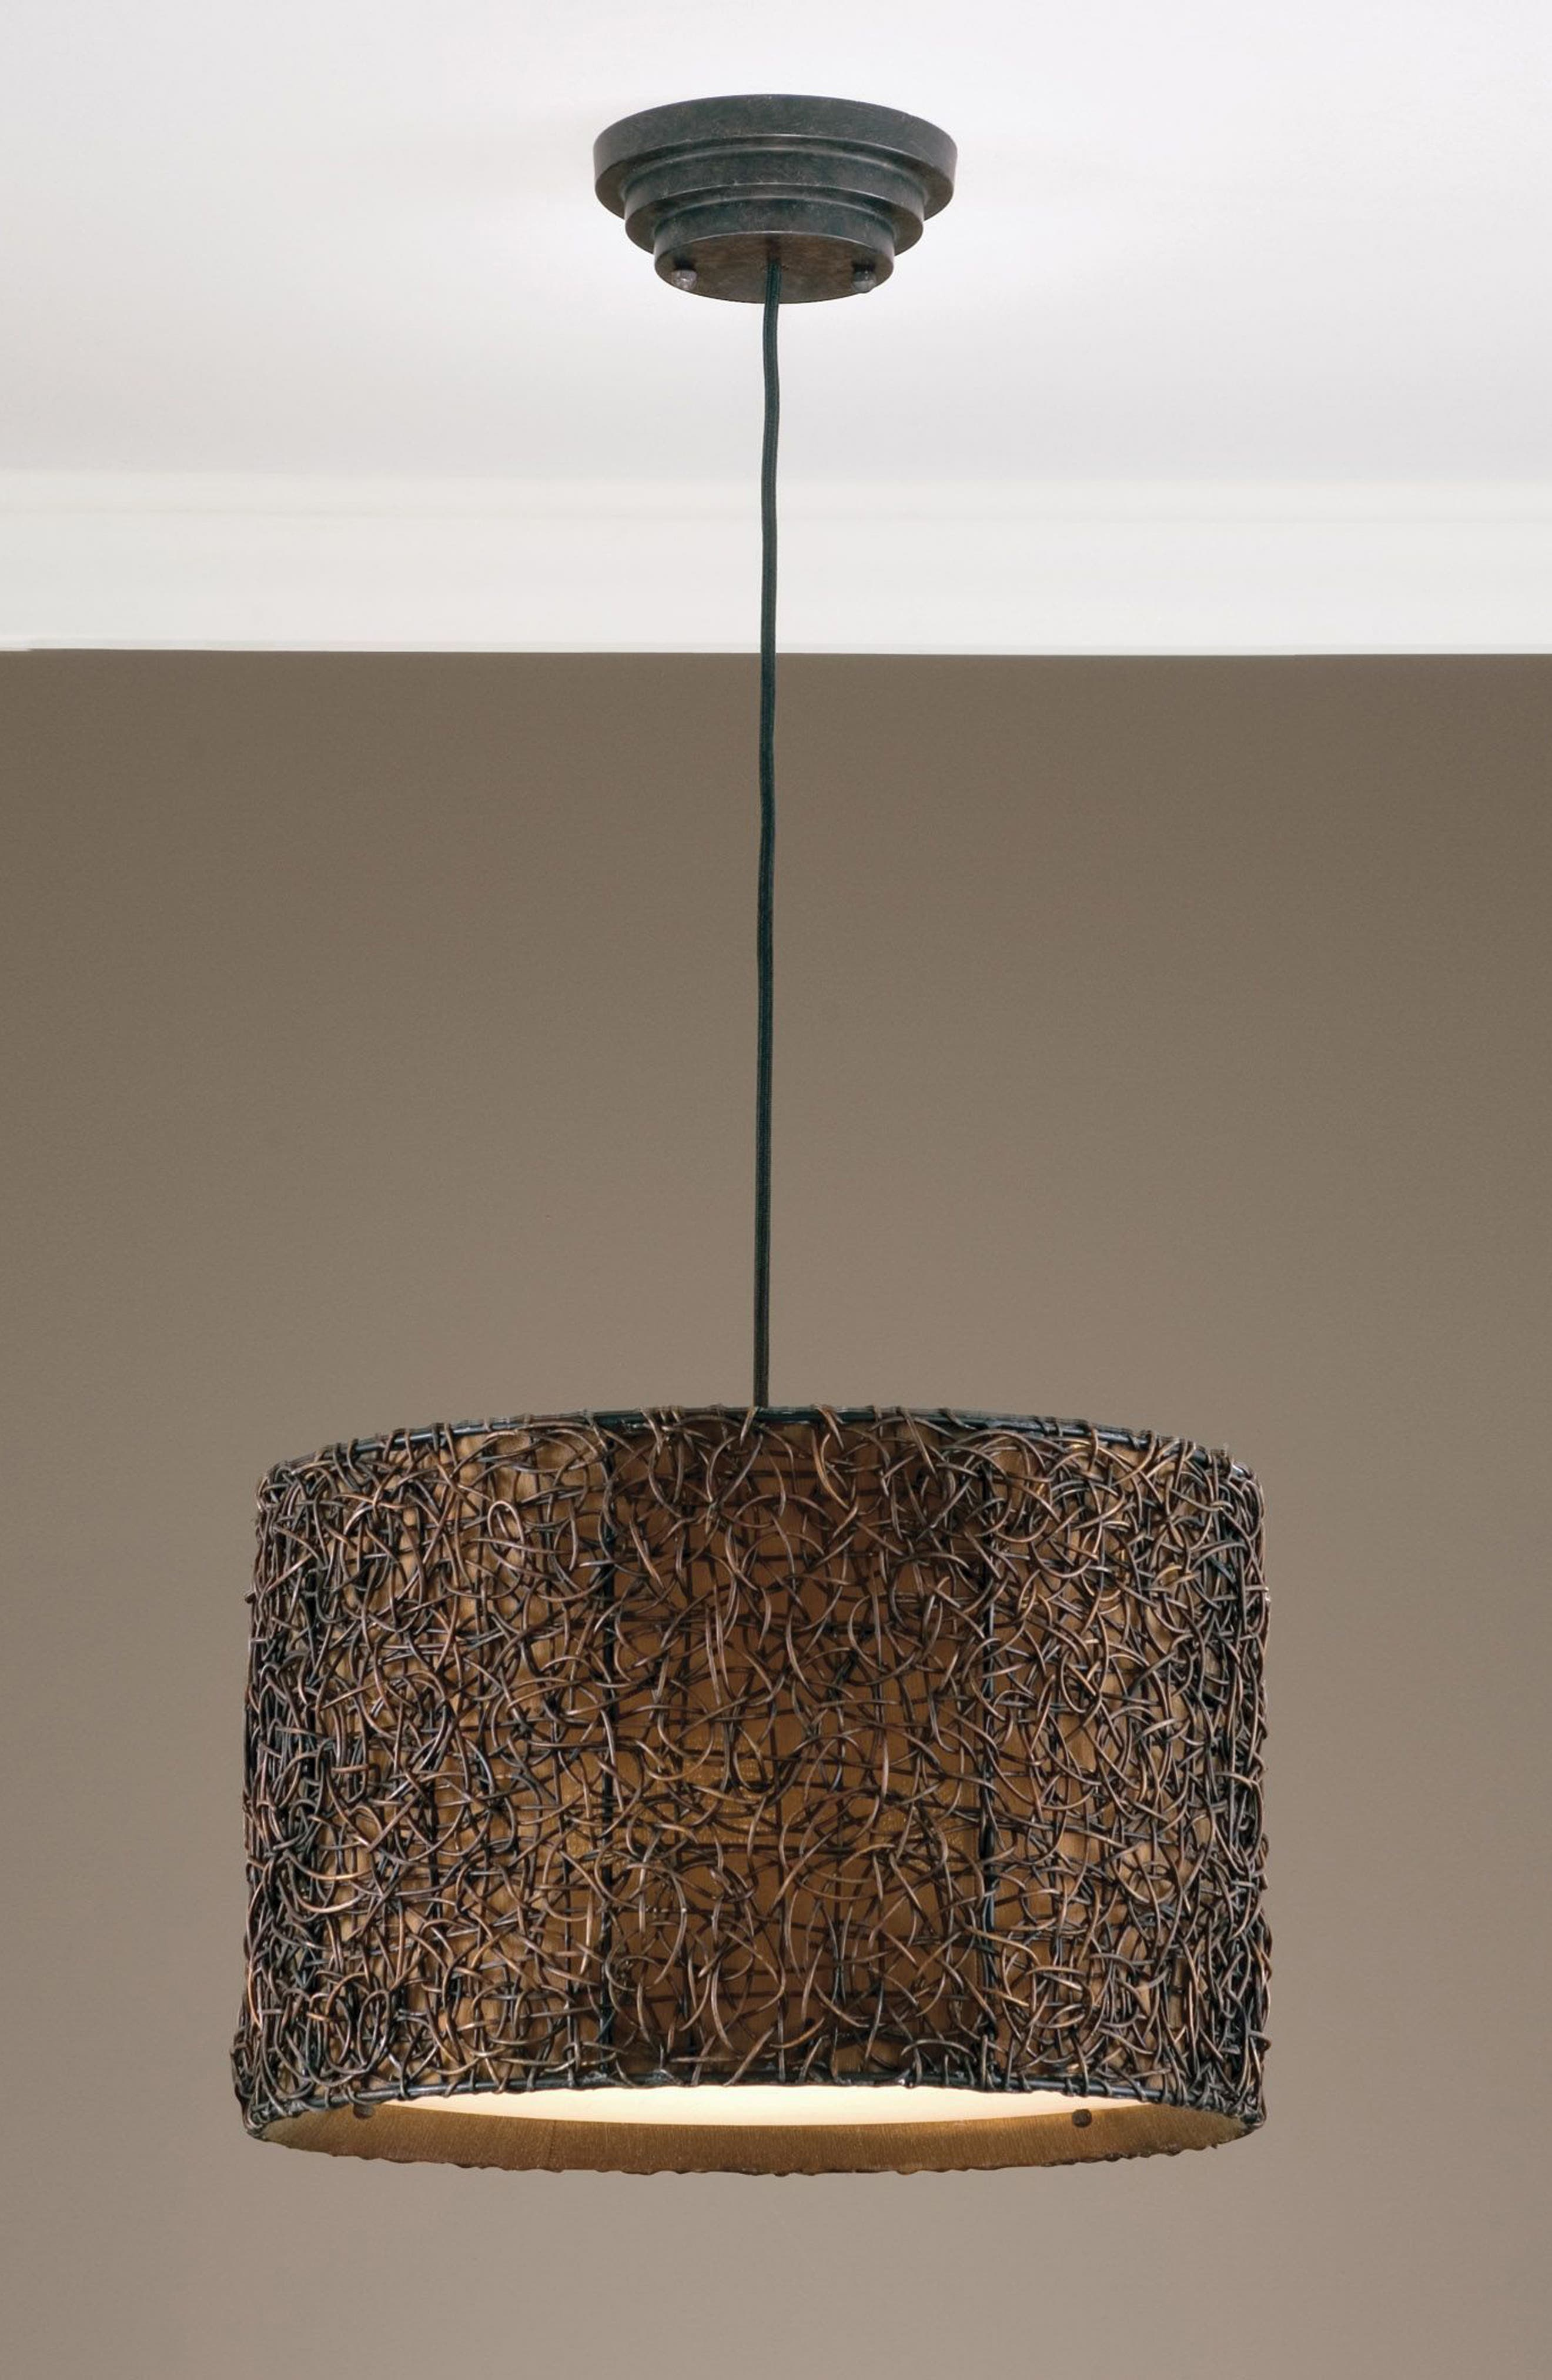 Knotted Rattan Pendant Lamp,                             Alternate thumbnail 2, color,                             220